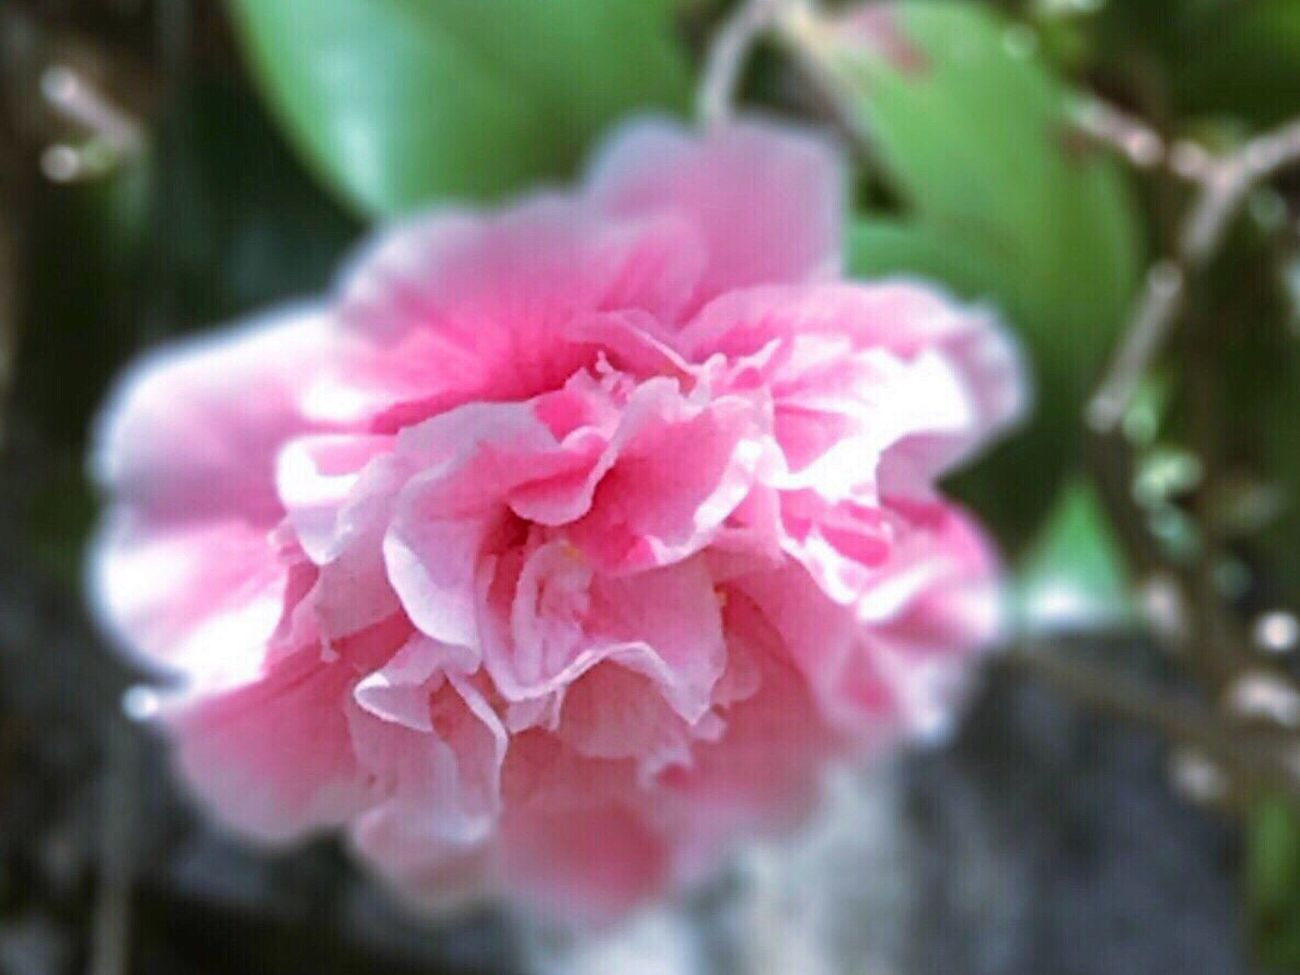 Camellia Spring Flowers Early Spring Sign Of Spring Japan Fukuoka,Japan Flower Shrine Masako201702